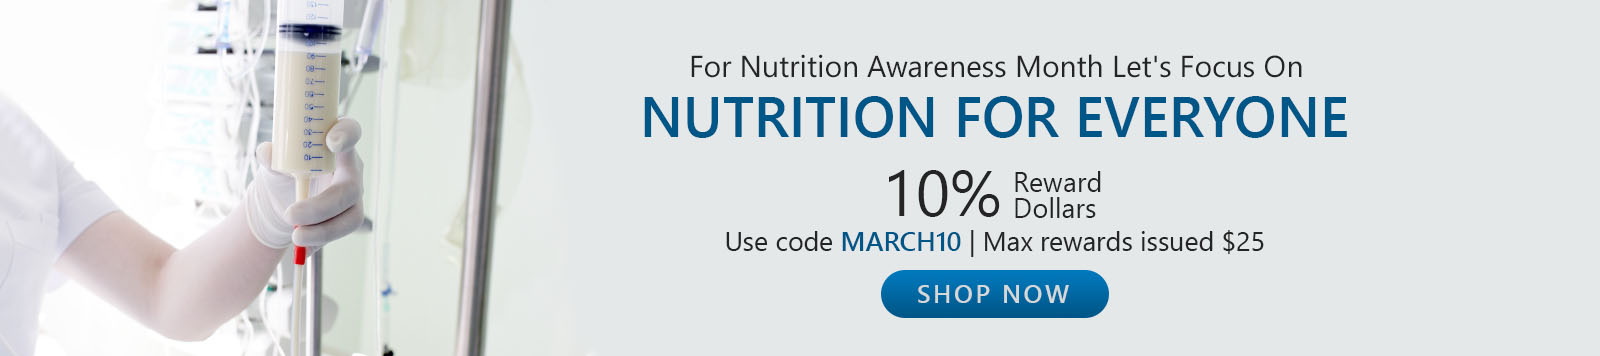 HPFY Nutrition For Everyone